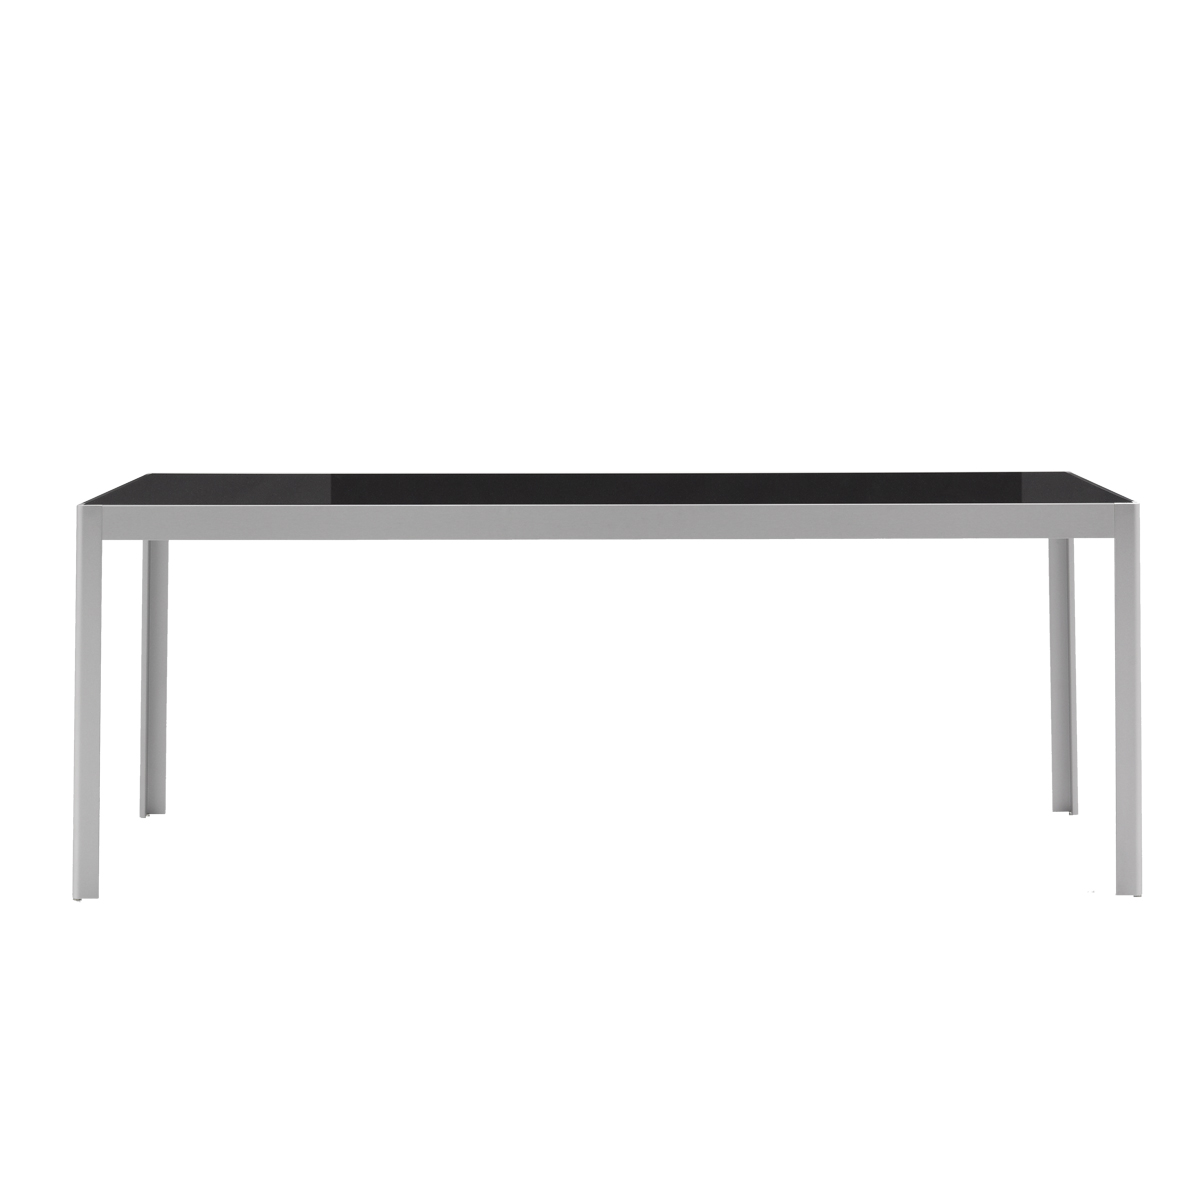 SIENNA GLASS DINING TABLE Beyond Furniture